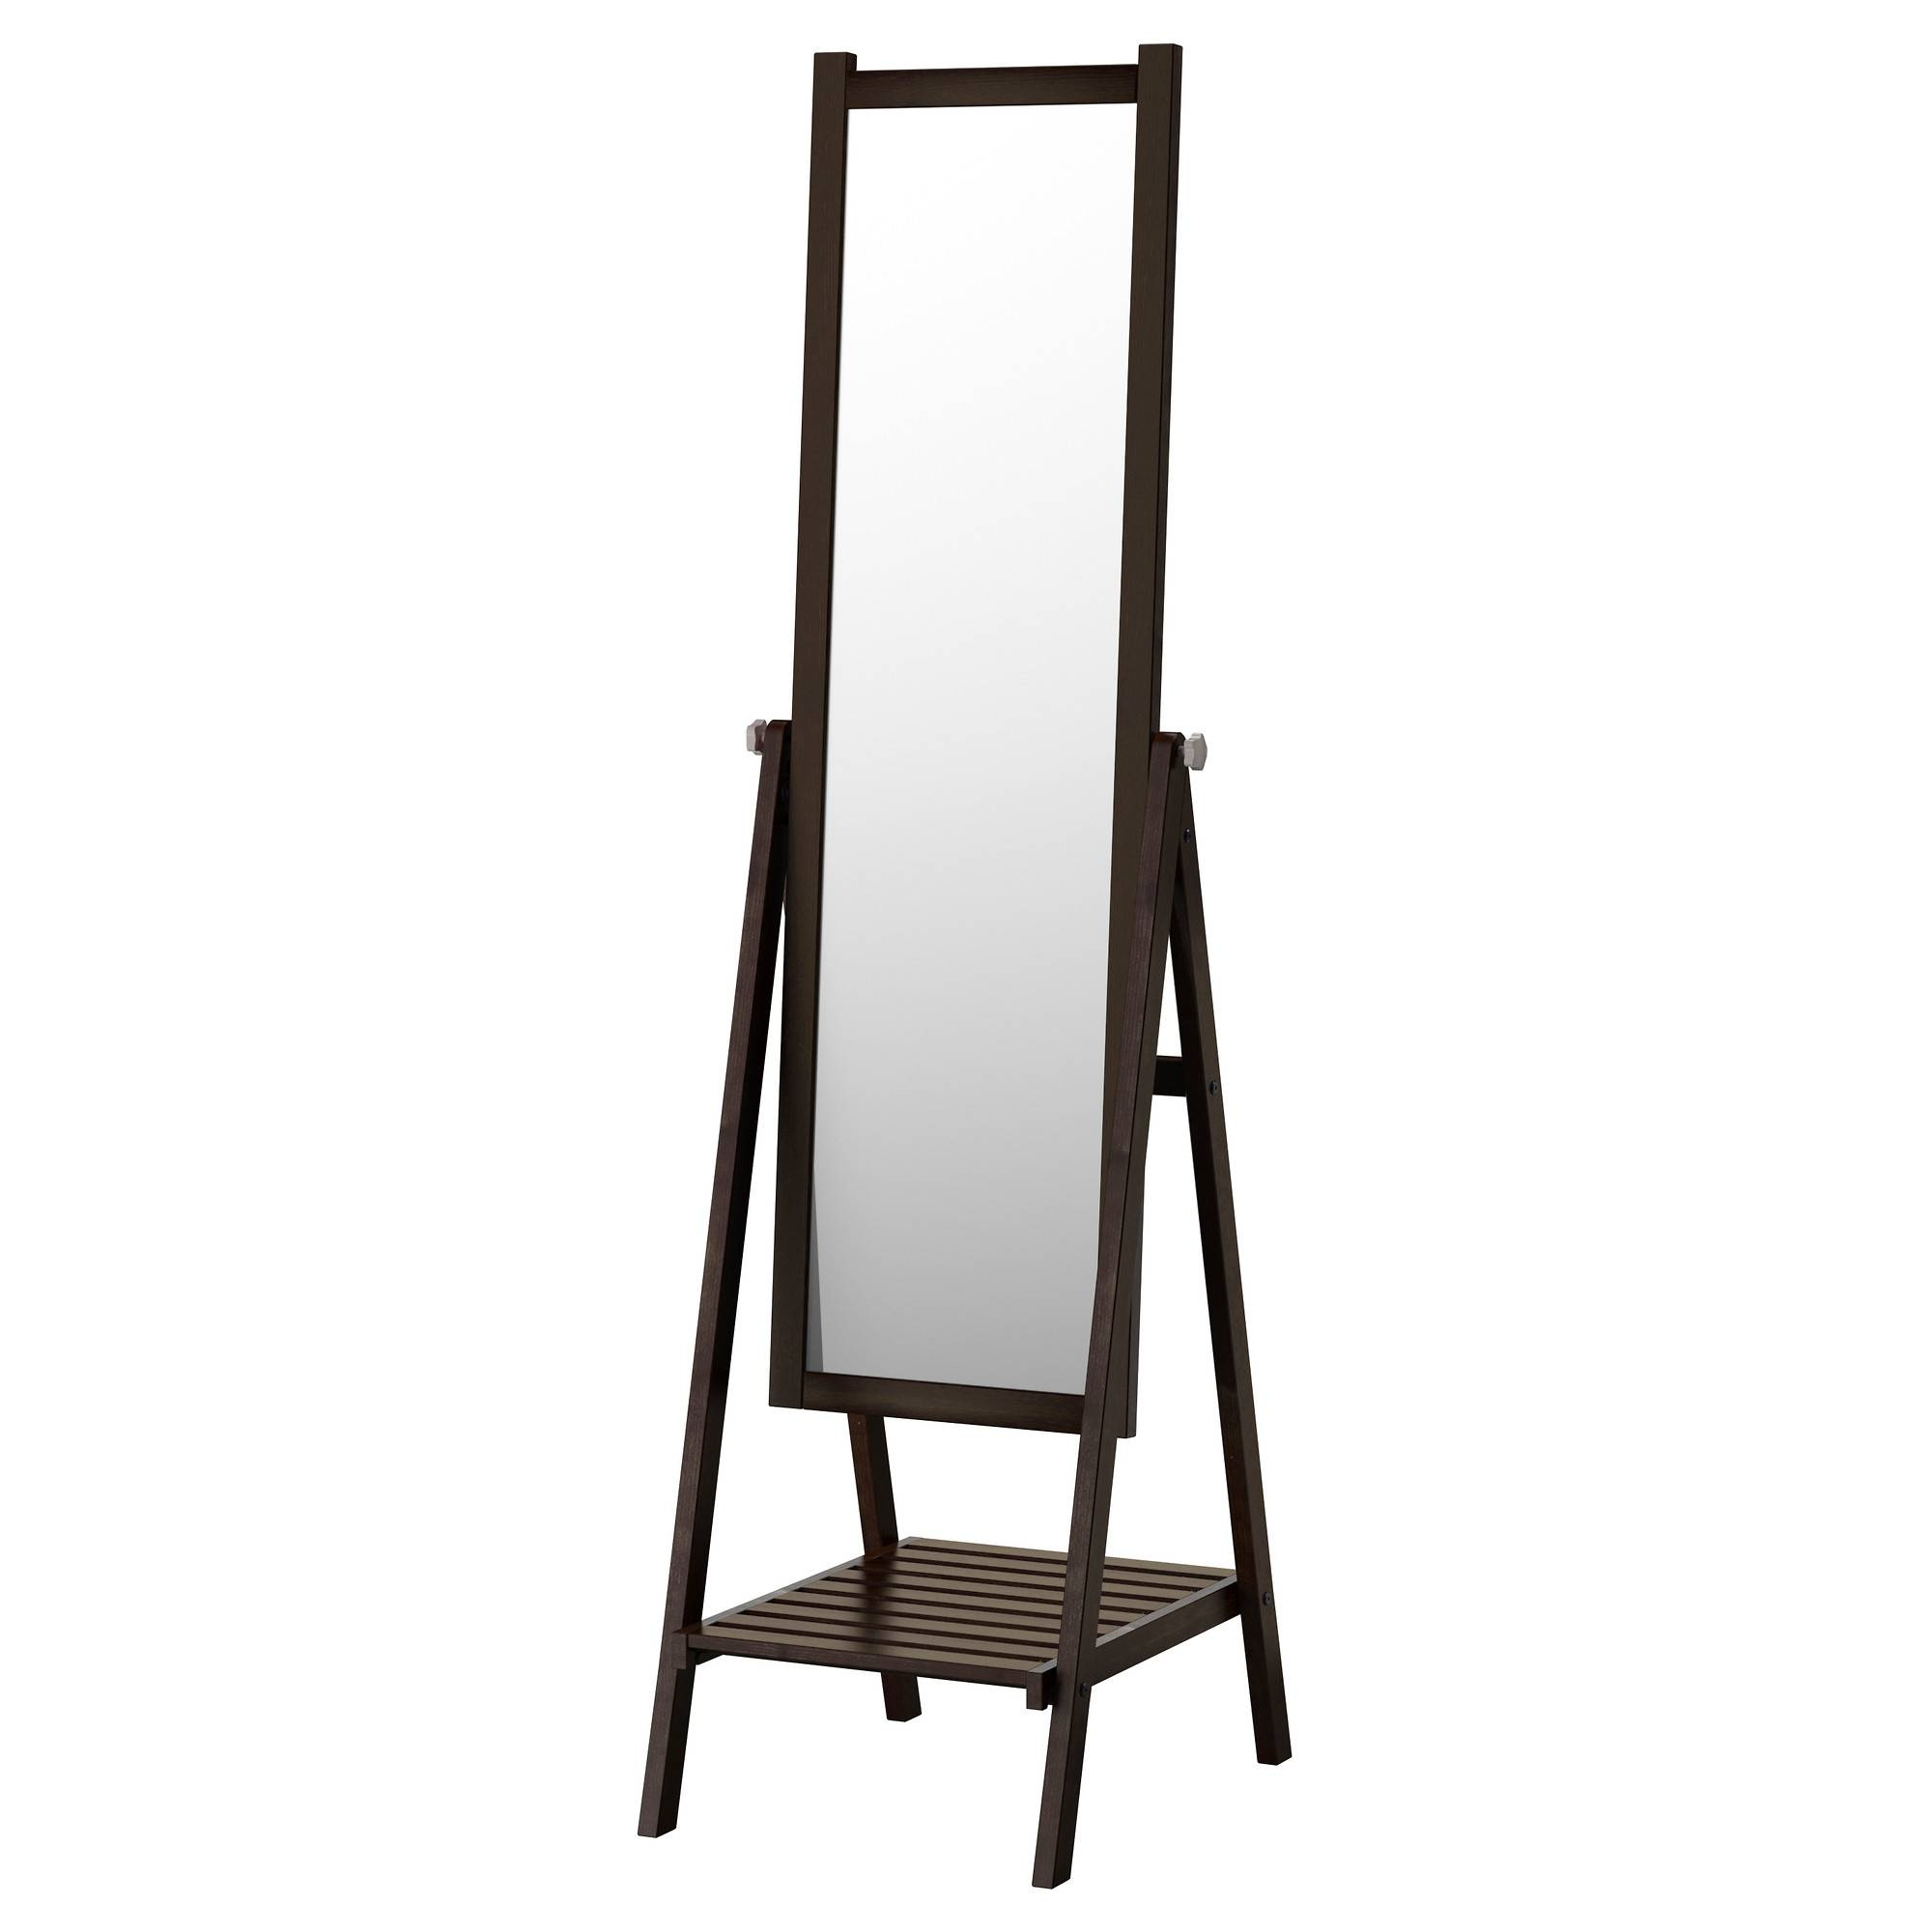 Full-Length Mirrors - Ikea for Extra Large Full Length Mirrors (Image 6 of 15)